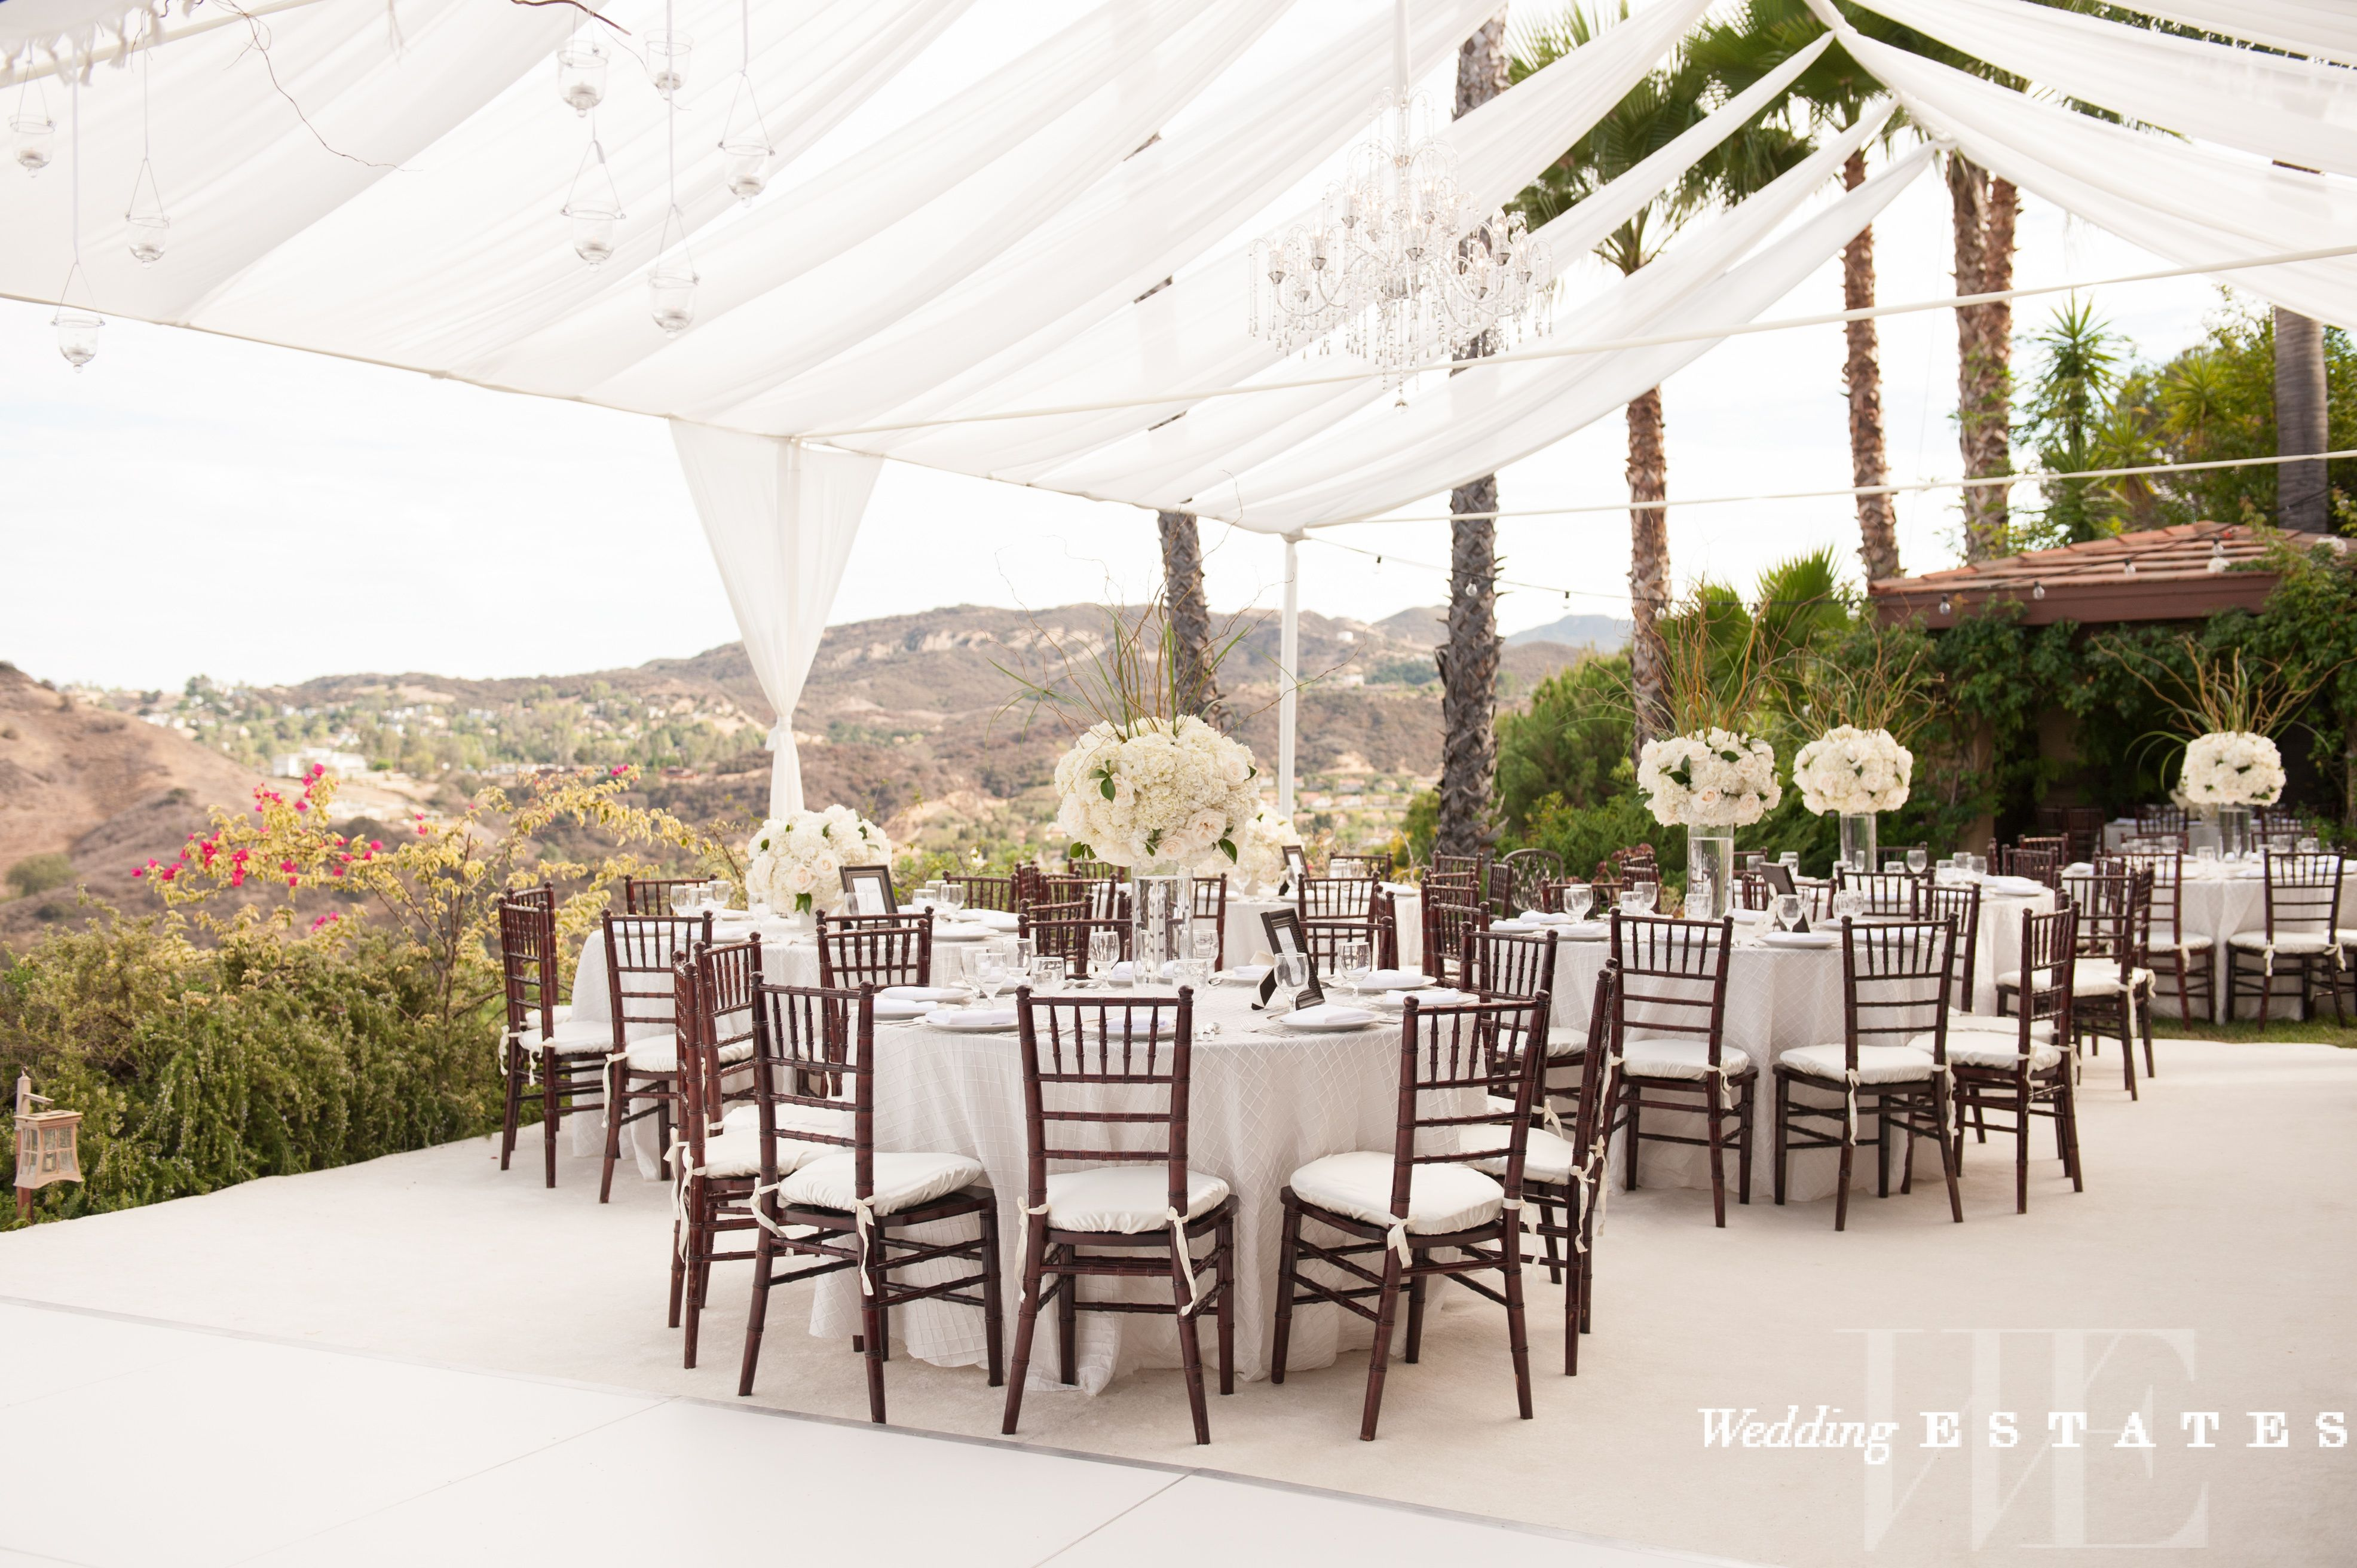 Places To Rent Wedding Decorations Near Me 2019 Best Places To Rent Wedding Supplies In La Wedding Rentals Decor Chair And Table Rental Places To Rent